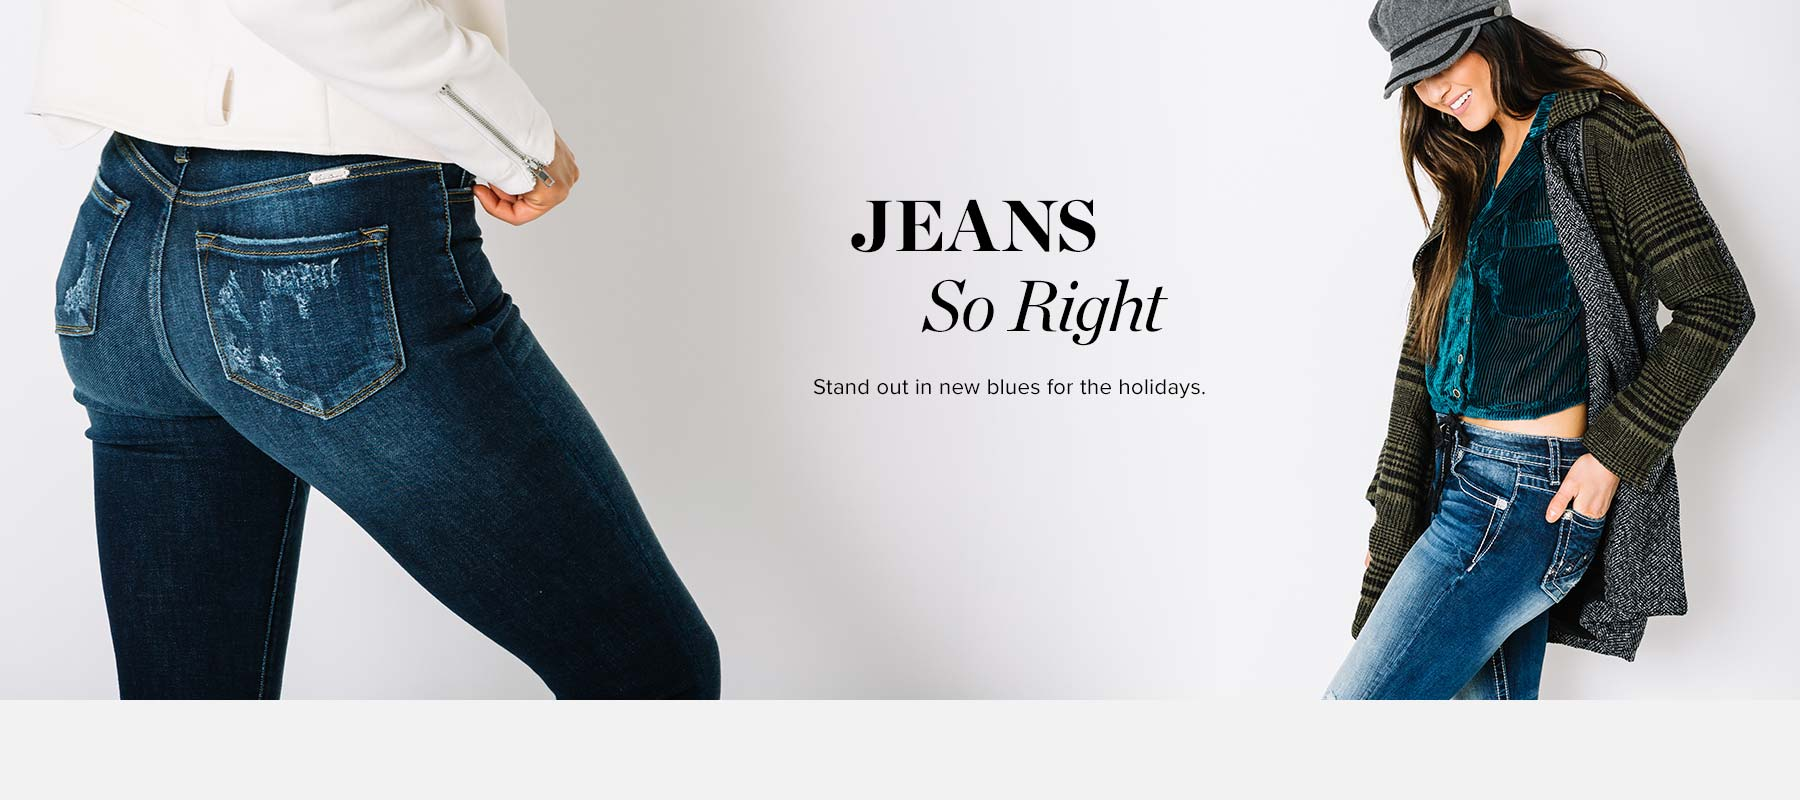 Jeans So Right - Stand out in new blues for the holidays. Girl wearing a pair of dark wash KanCan jeans and a Girl wearing a pair of dark wash Miss Me jeans